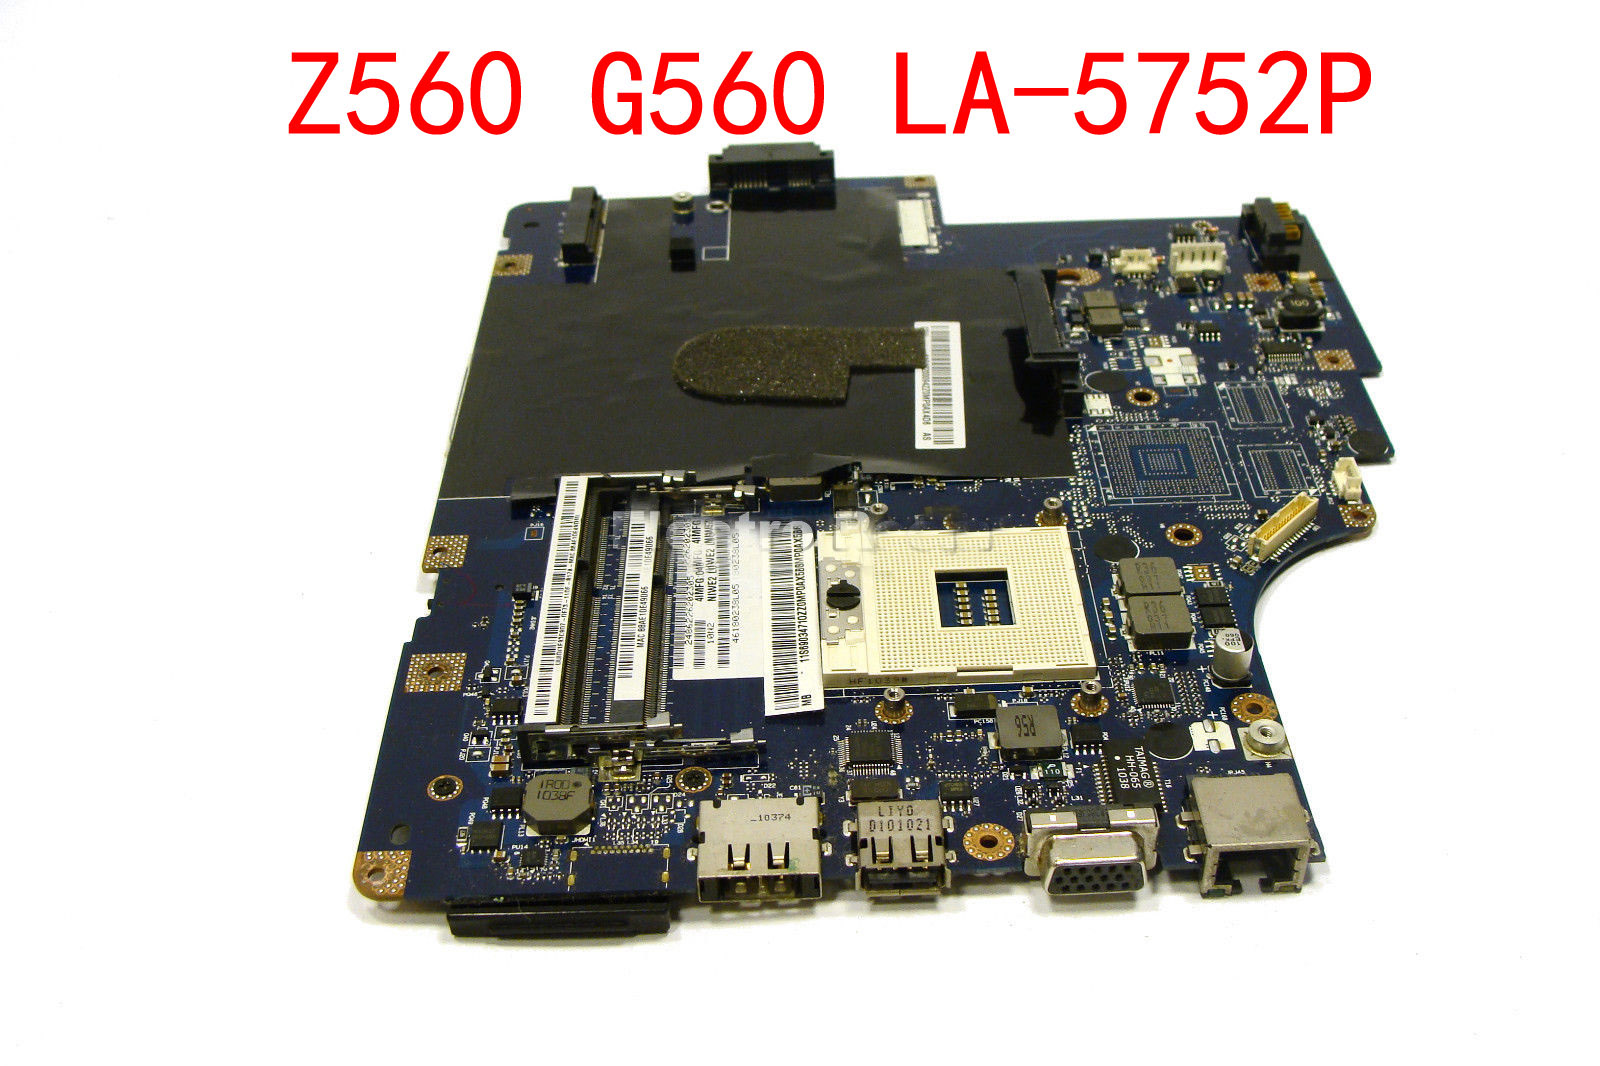 HOLYTIME laptop Motherboard/mainboard for Lenovo Z560 g560 LA-5752P HM55 DDR3 integrated graphics card 100% tested Fully